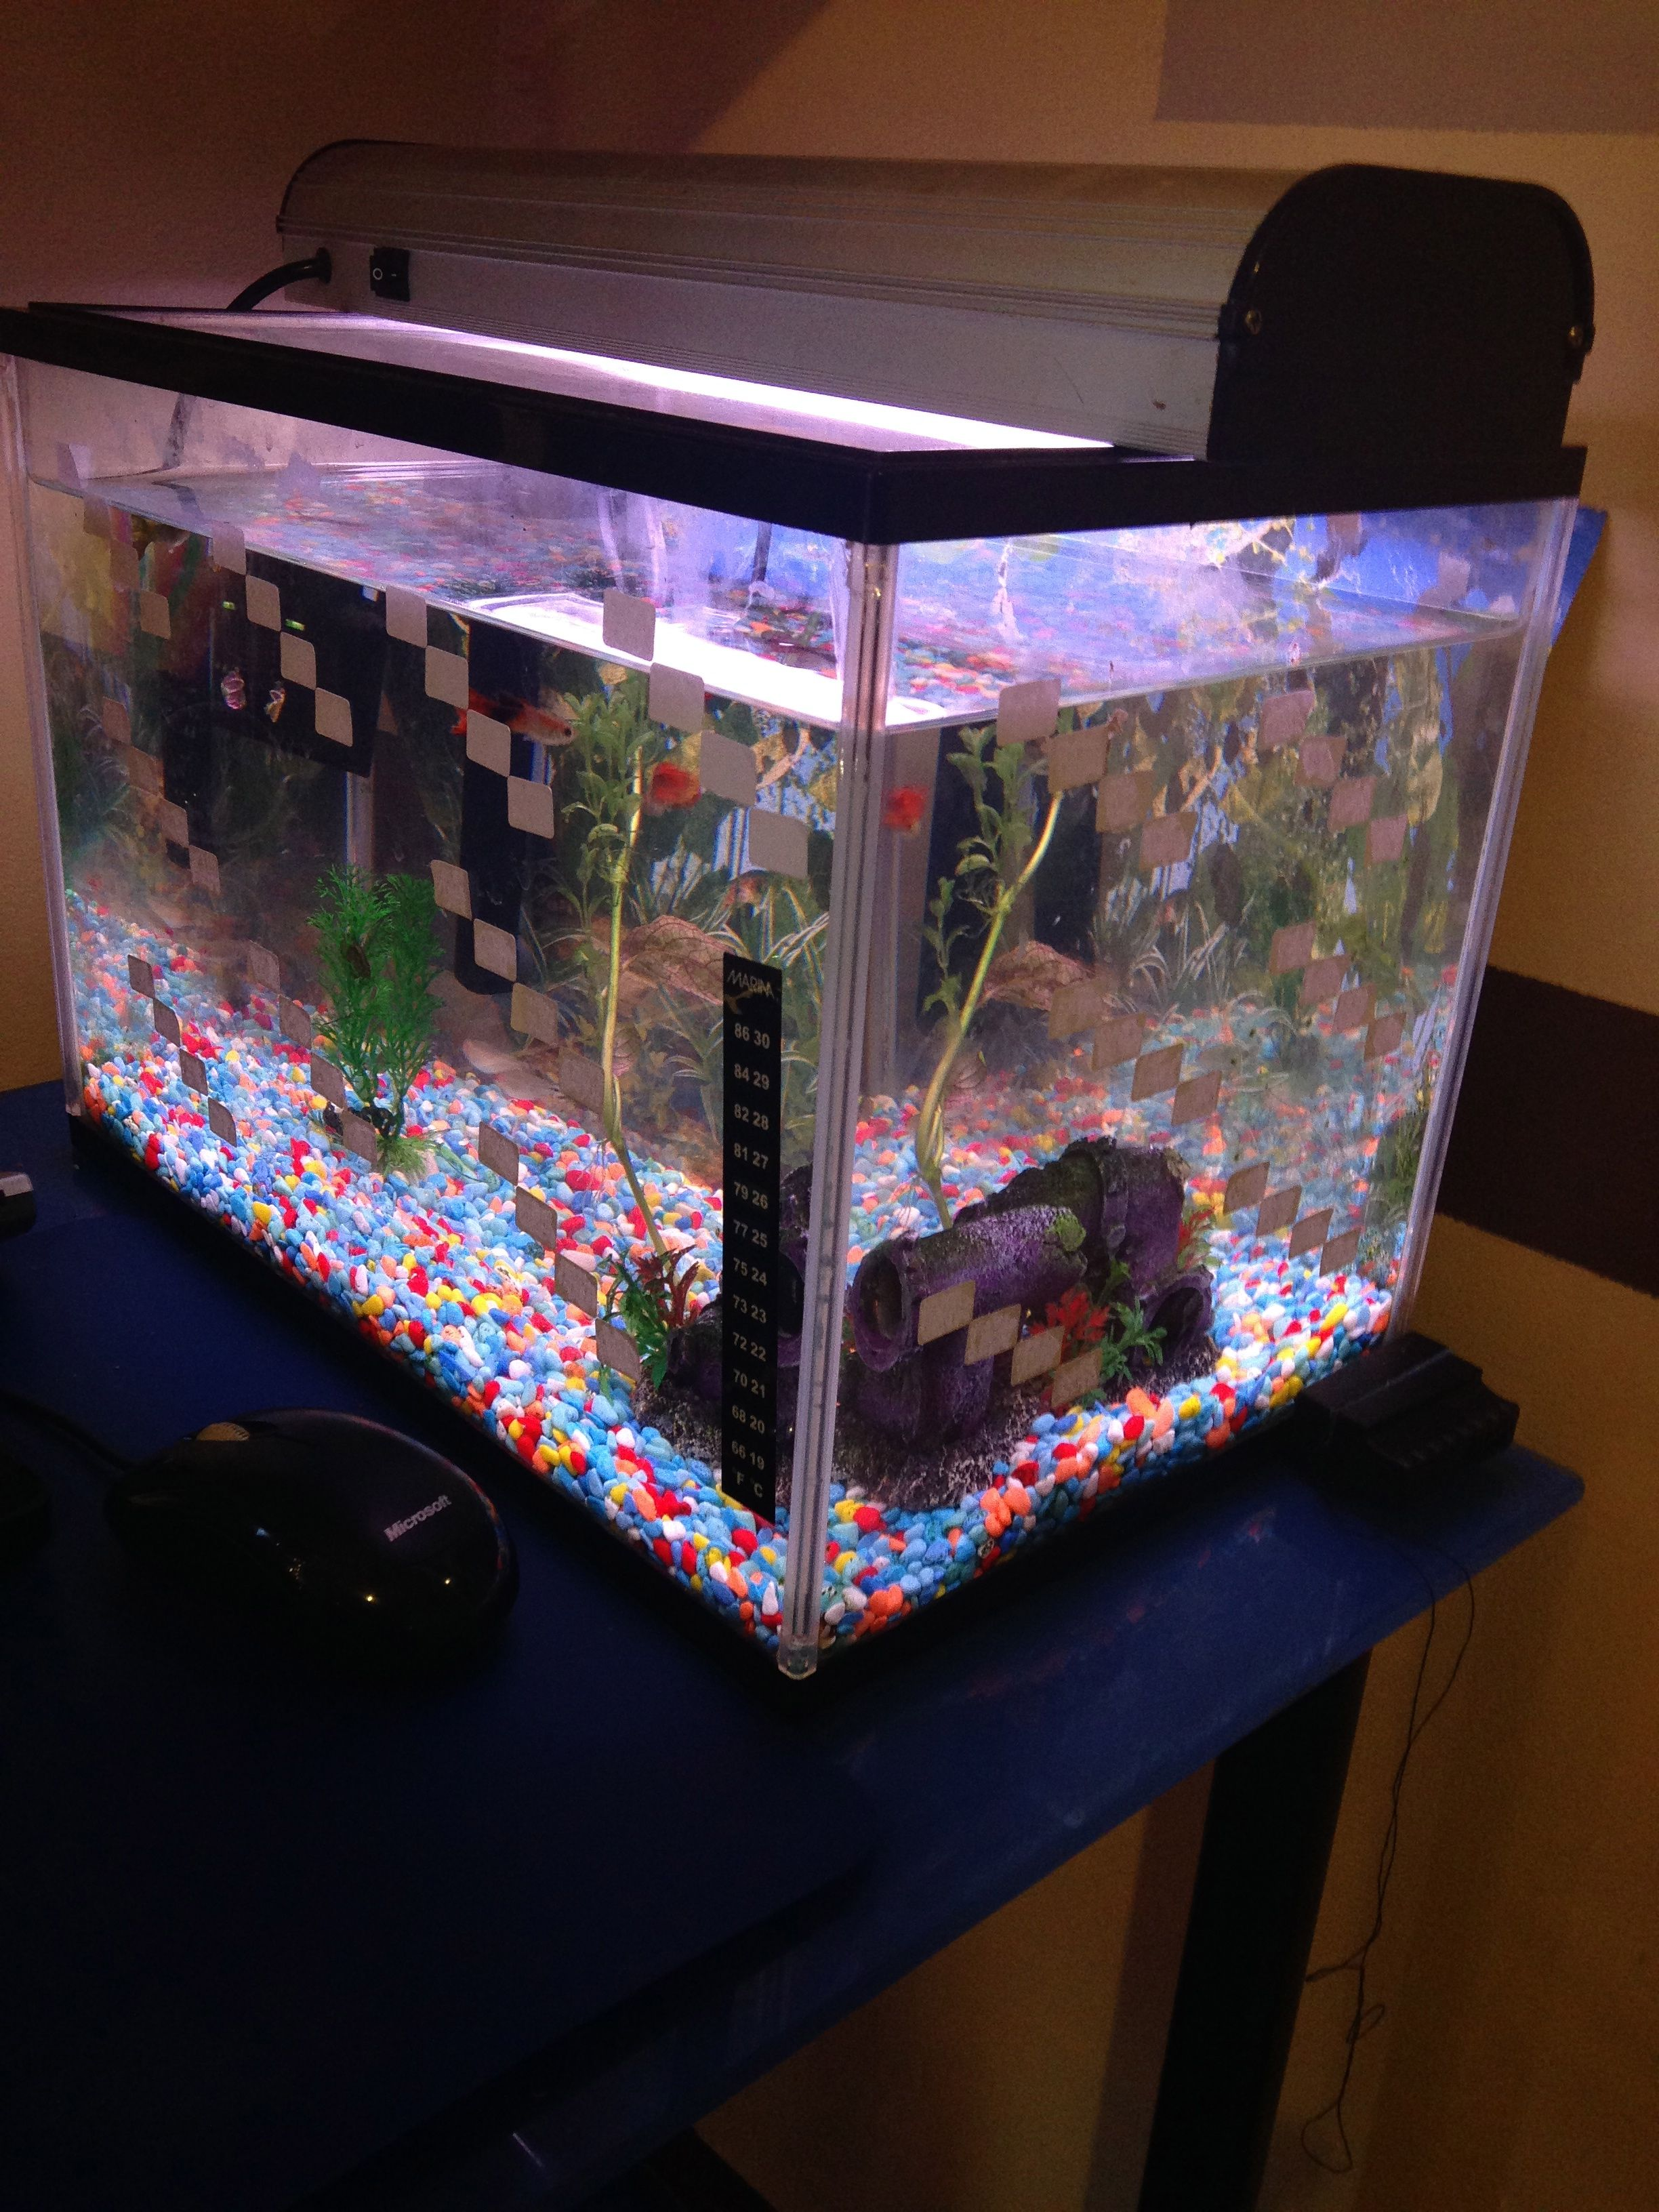 Fish aquarium bed frame - Using White Stickers To Make The Fish Tank Look Like Minecraft Glass